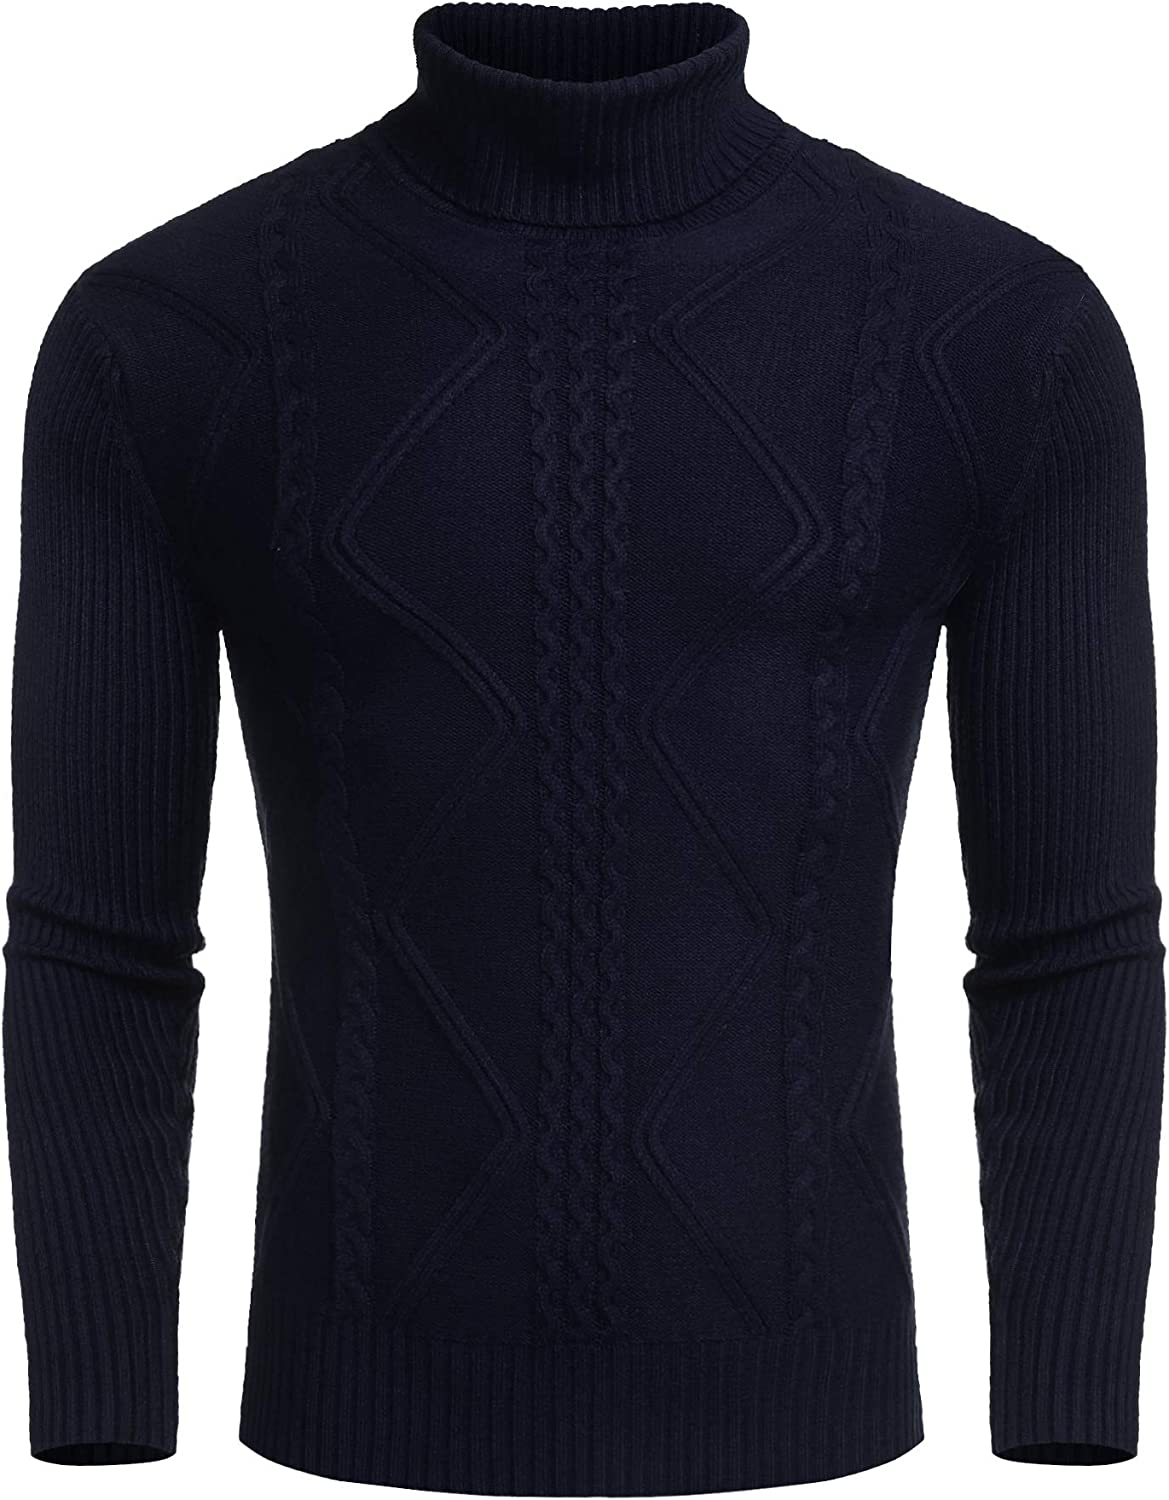 COOFANDY Men's Turtleneck Sweaters Casual Slim Fit Knitted Thermal Pullover Sweater